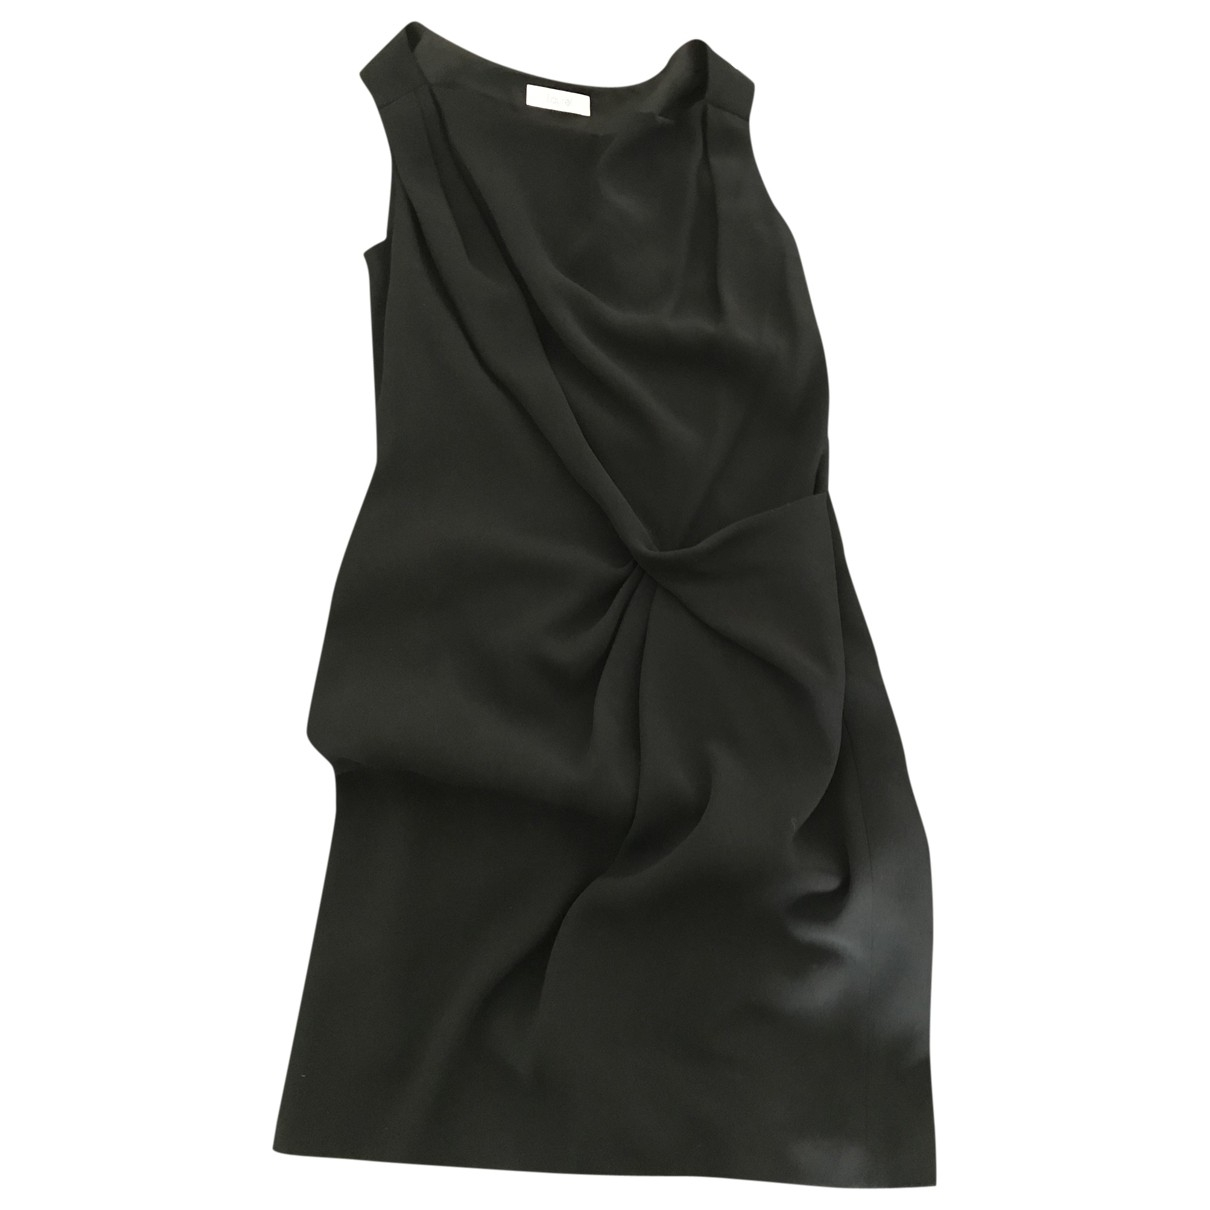 Laurel \N Black dress for Women XS International